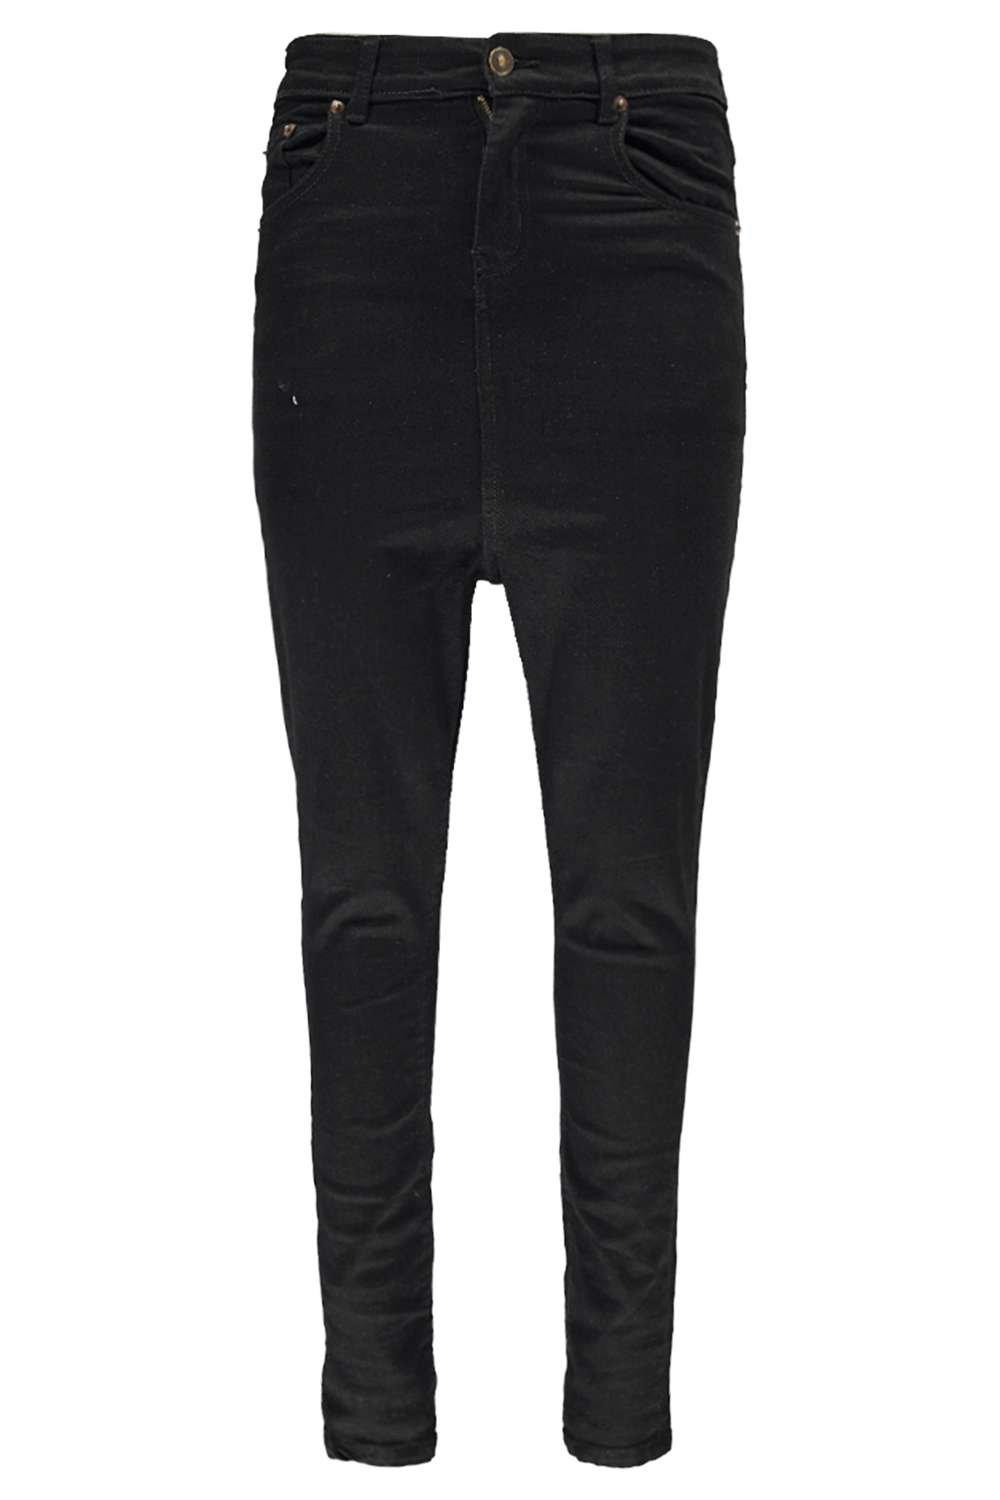 Drop Crotch Skinny Black Jeans at boohoo.com